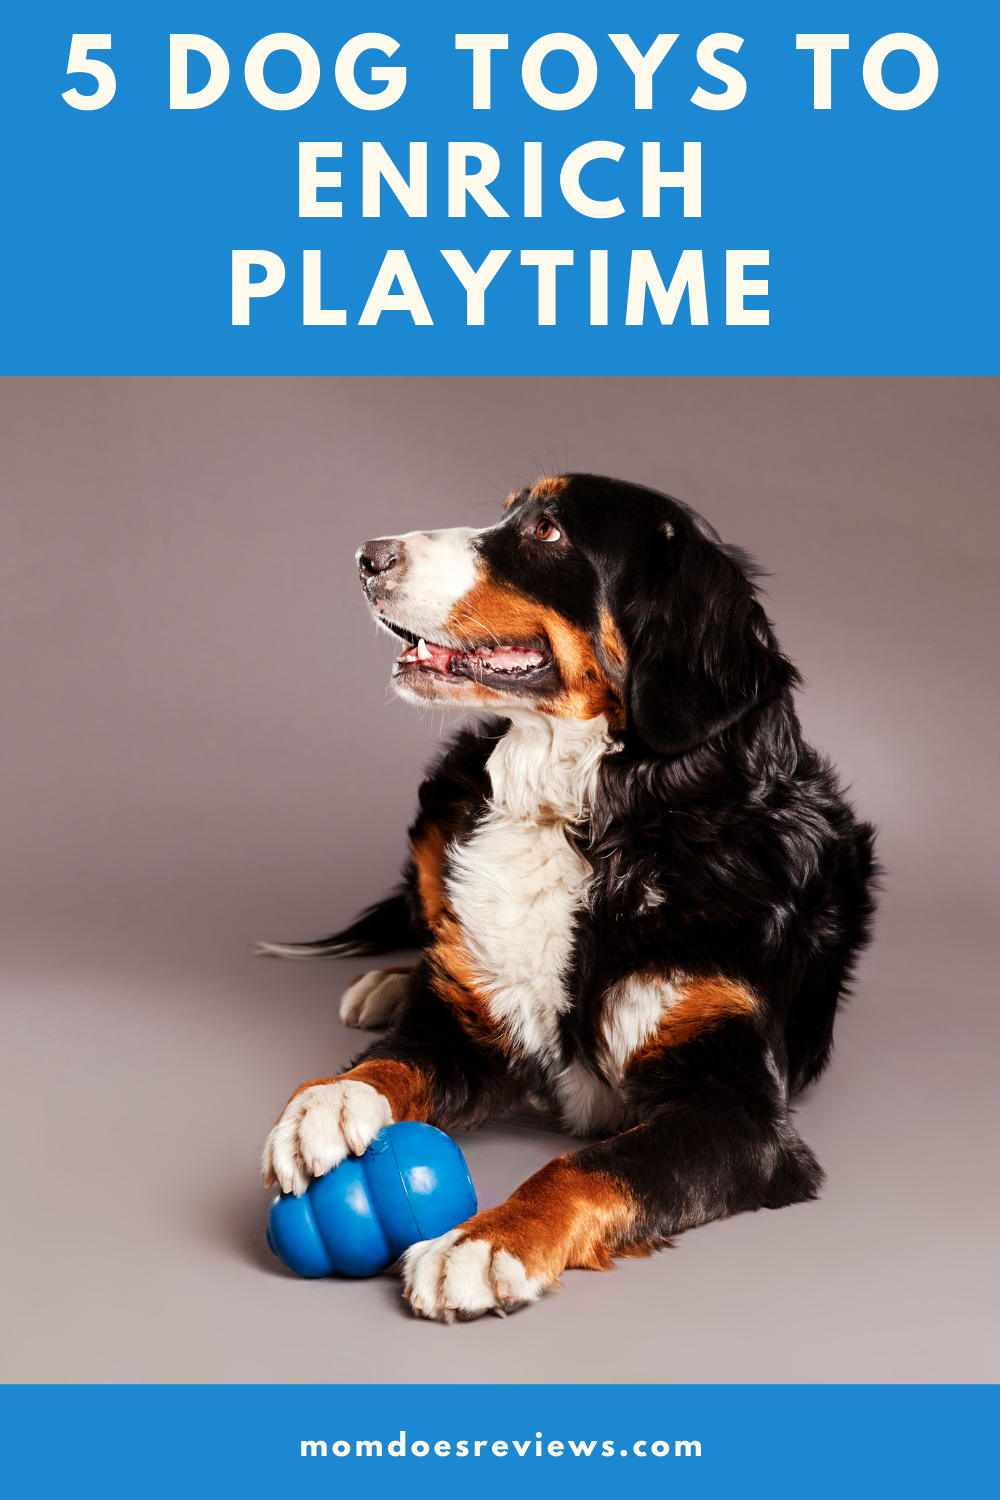 5 Great Toys to Enrich Your Dog's Playtime